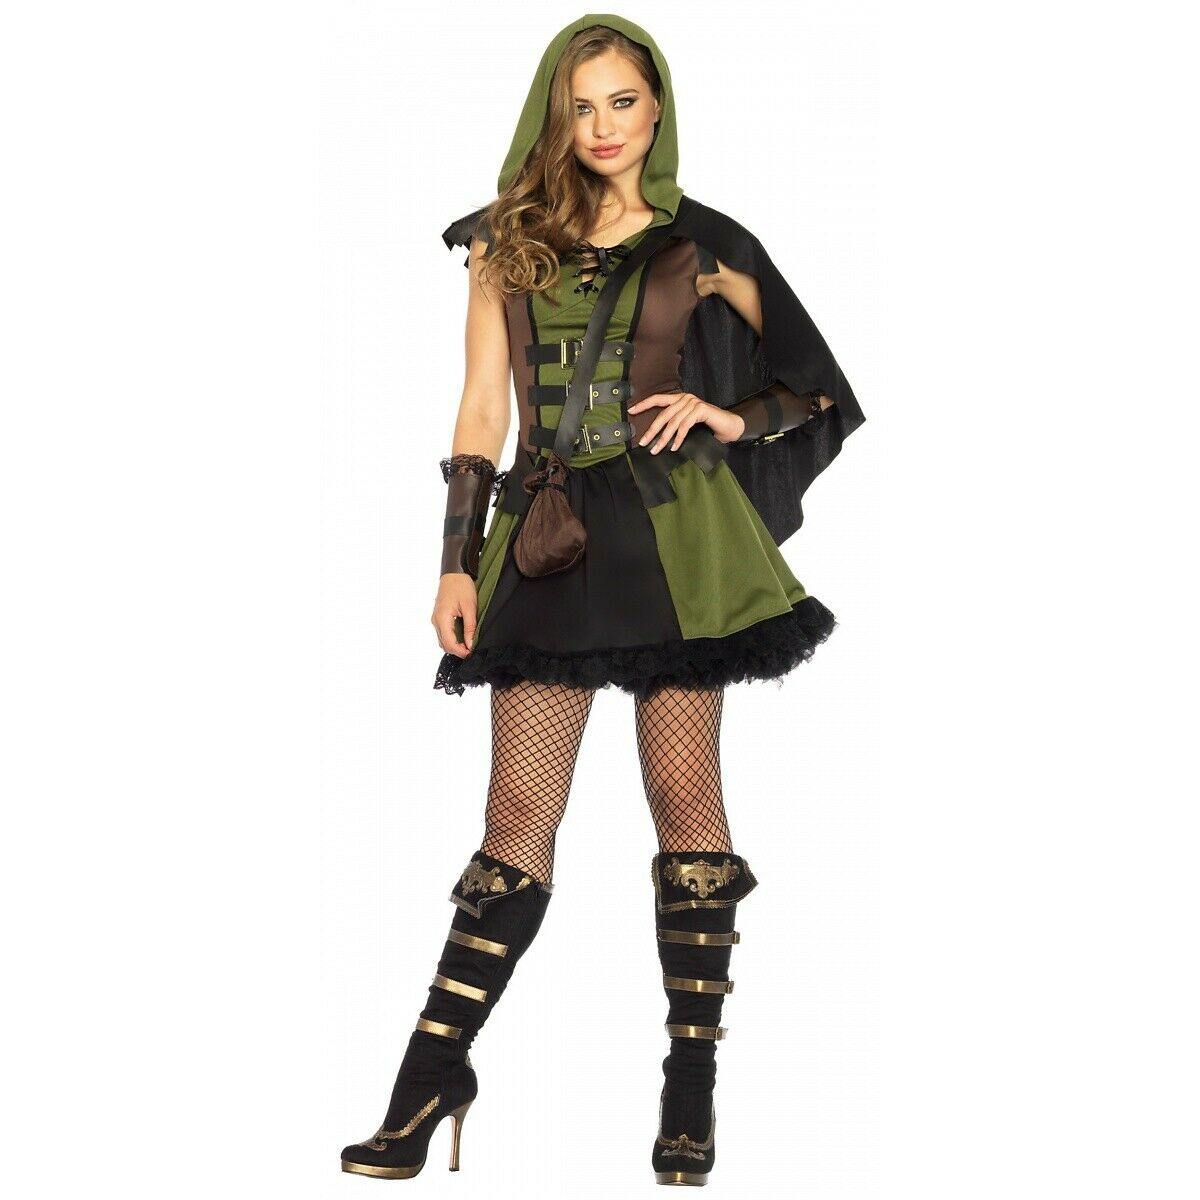 robin hood costume adult medieval huntress halloween fancy dress